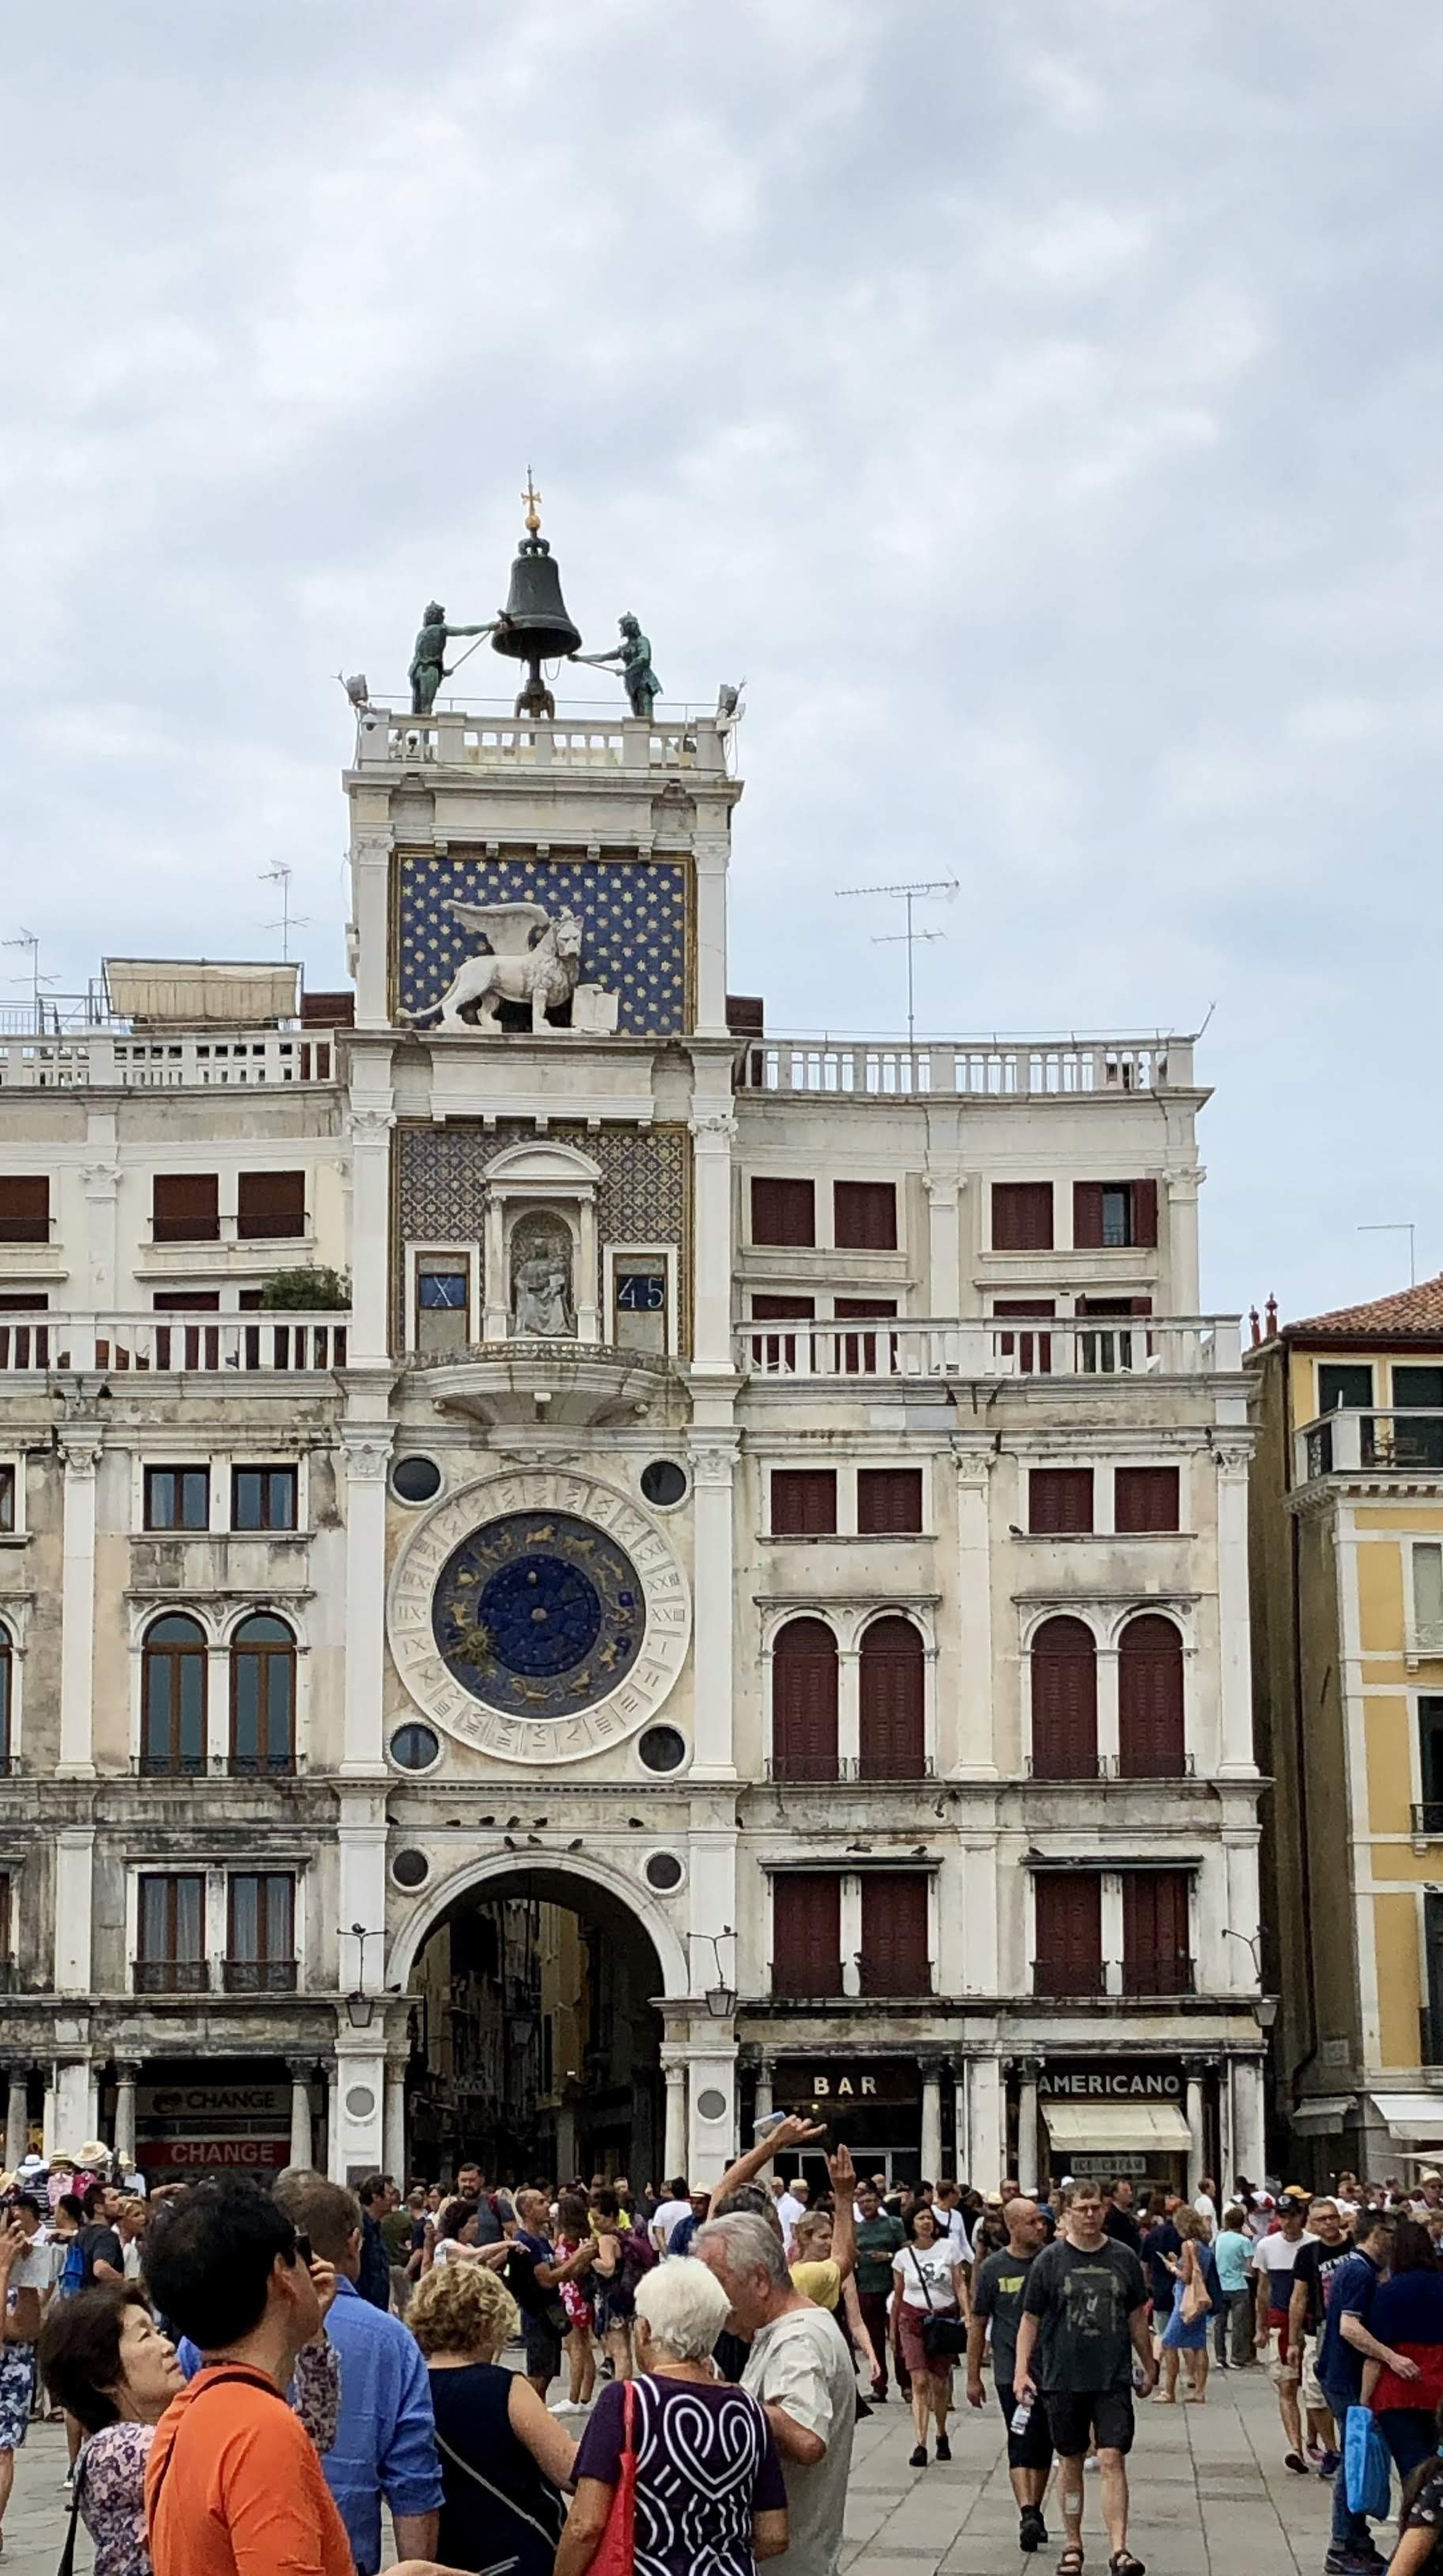 San Marco clock tower